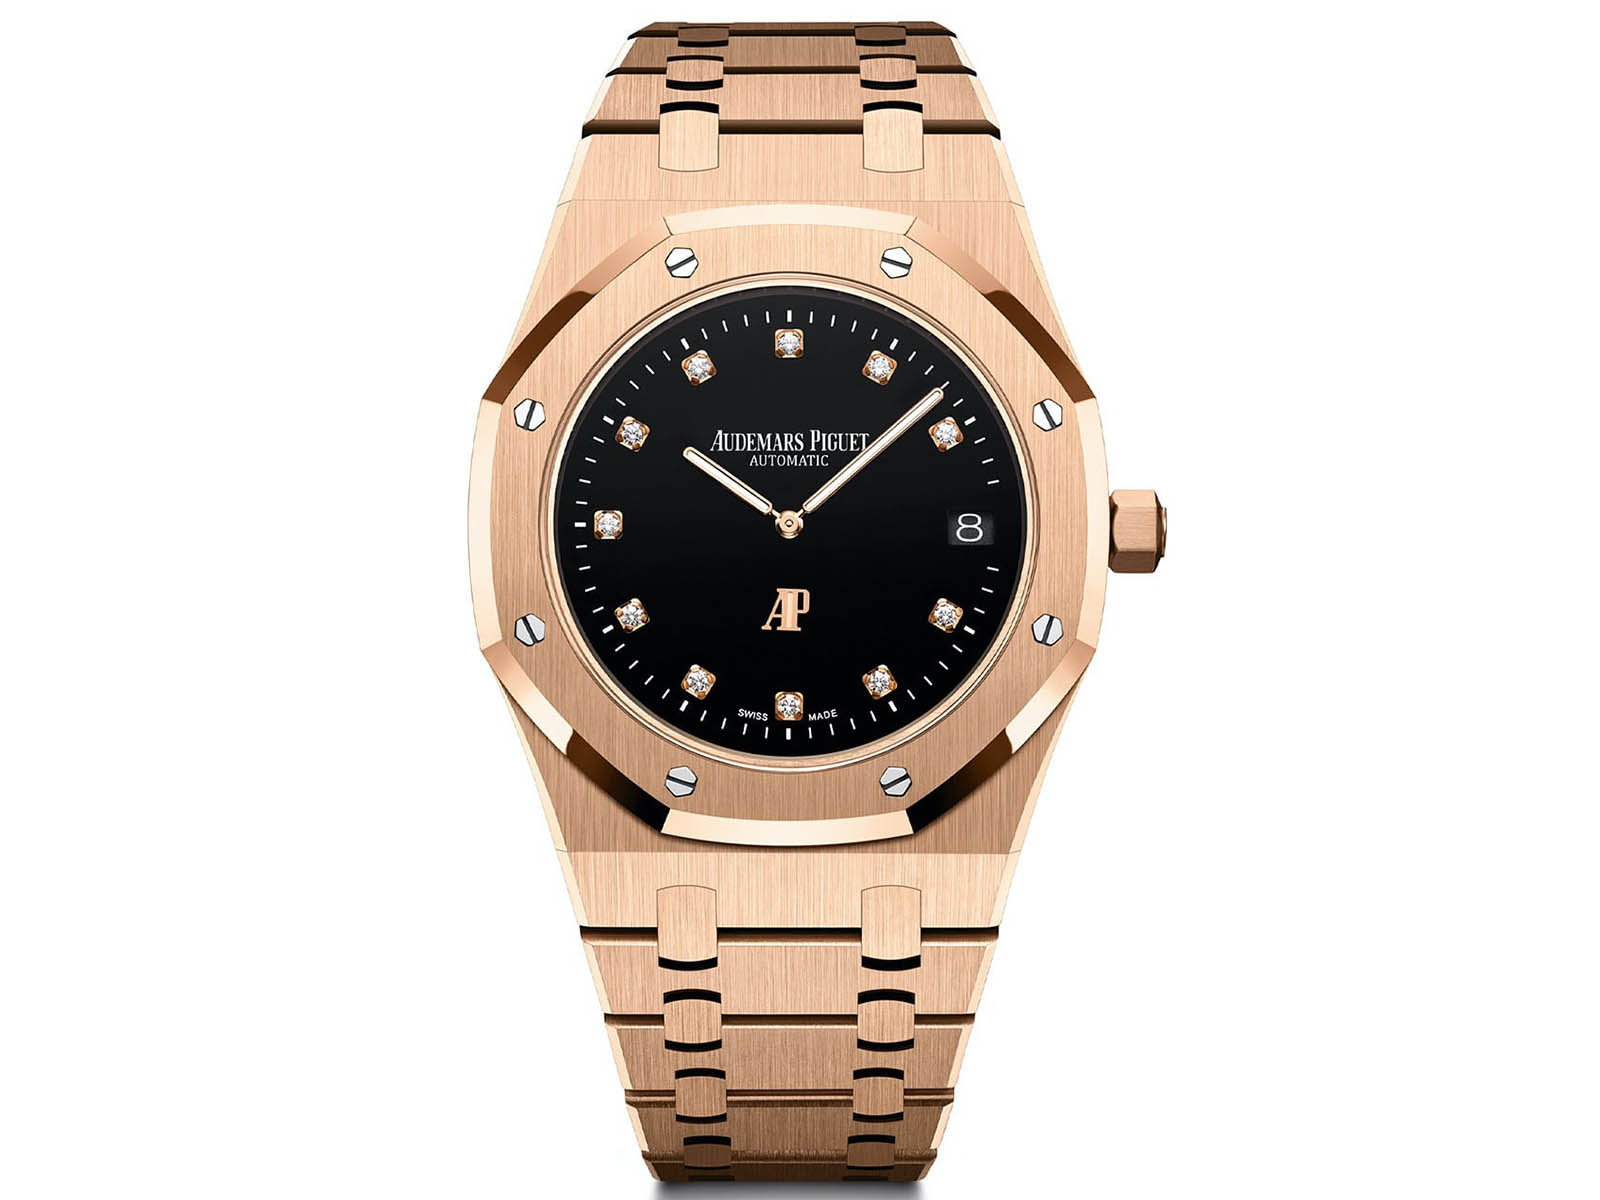 15207or-oo-1240or-01-audemars-piguet-royal-oak-jumbo-extra-thin-pink-gold-2.jpg